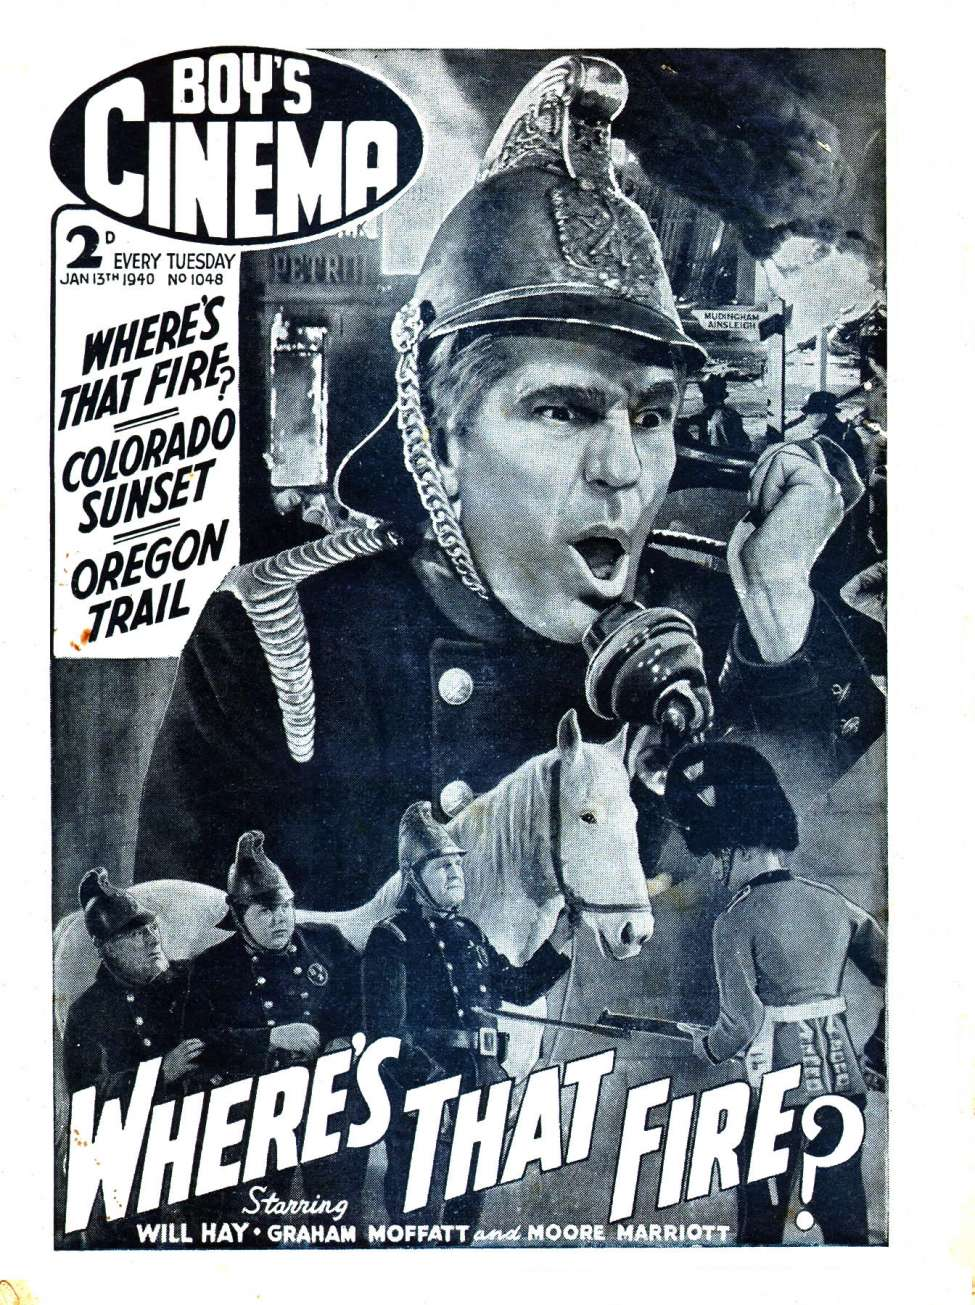 Comic Book Cover For Boy's Cinema 1048 - Where's That Fire? starring Will Hay